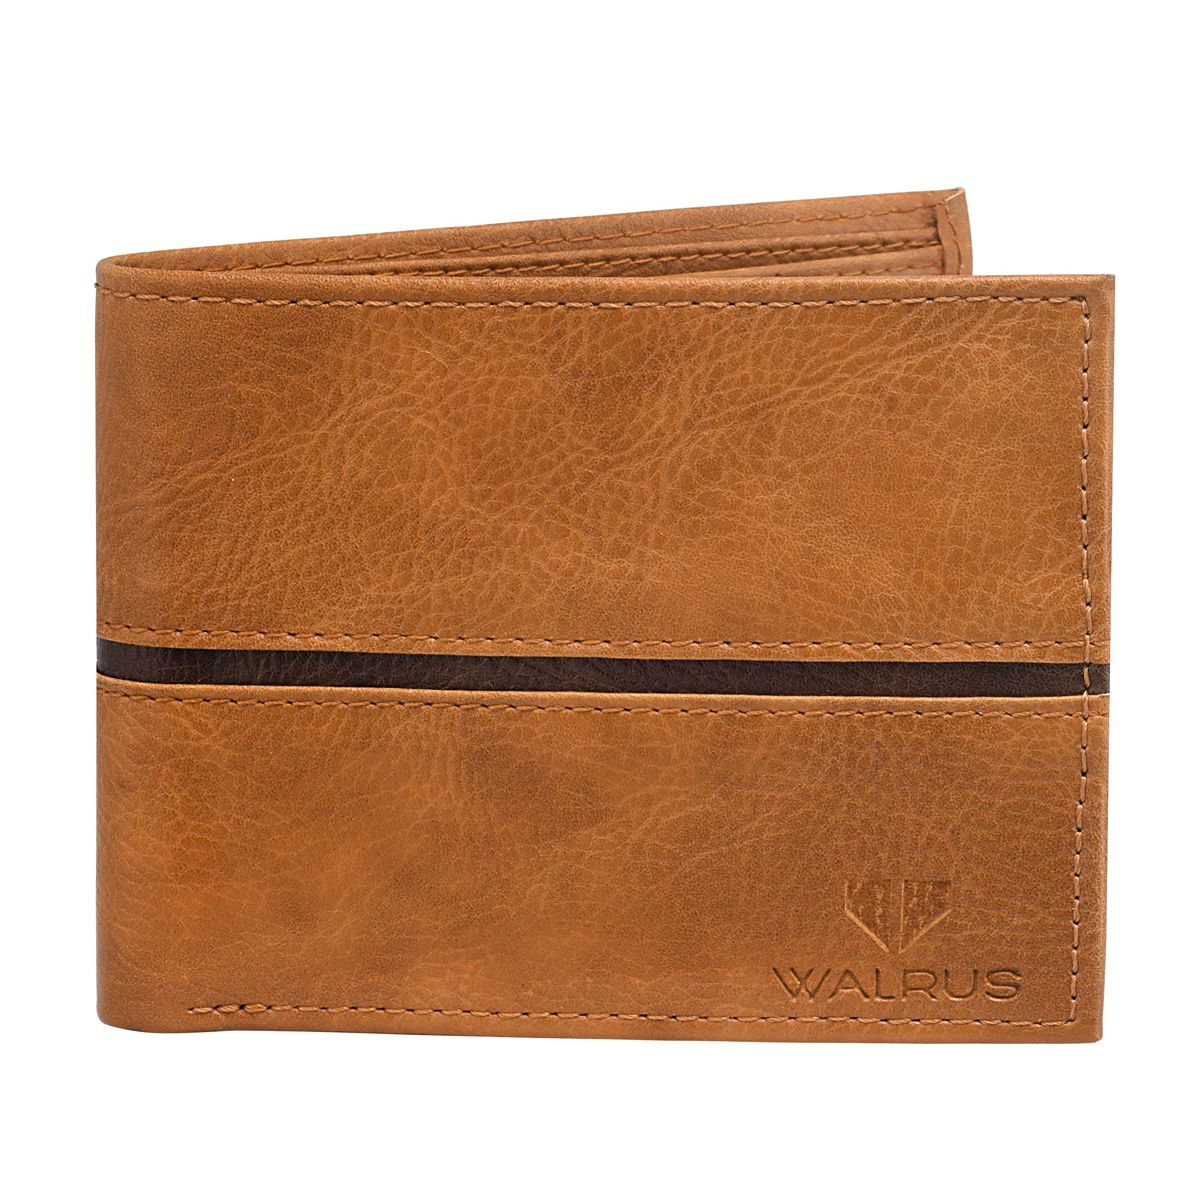 Walrus Diplomet Brown Color Men Leather Wallet- WW-DPT-09